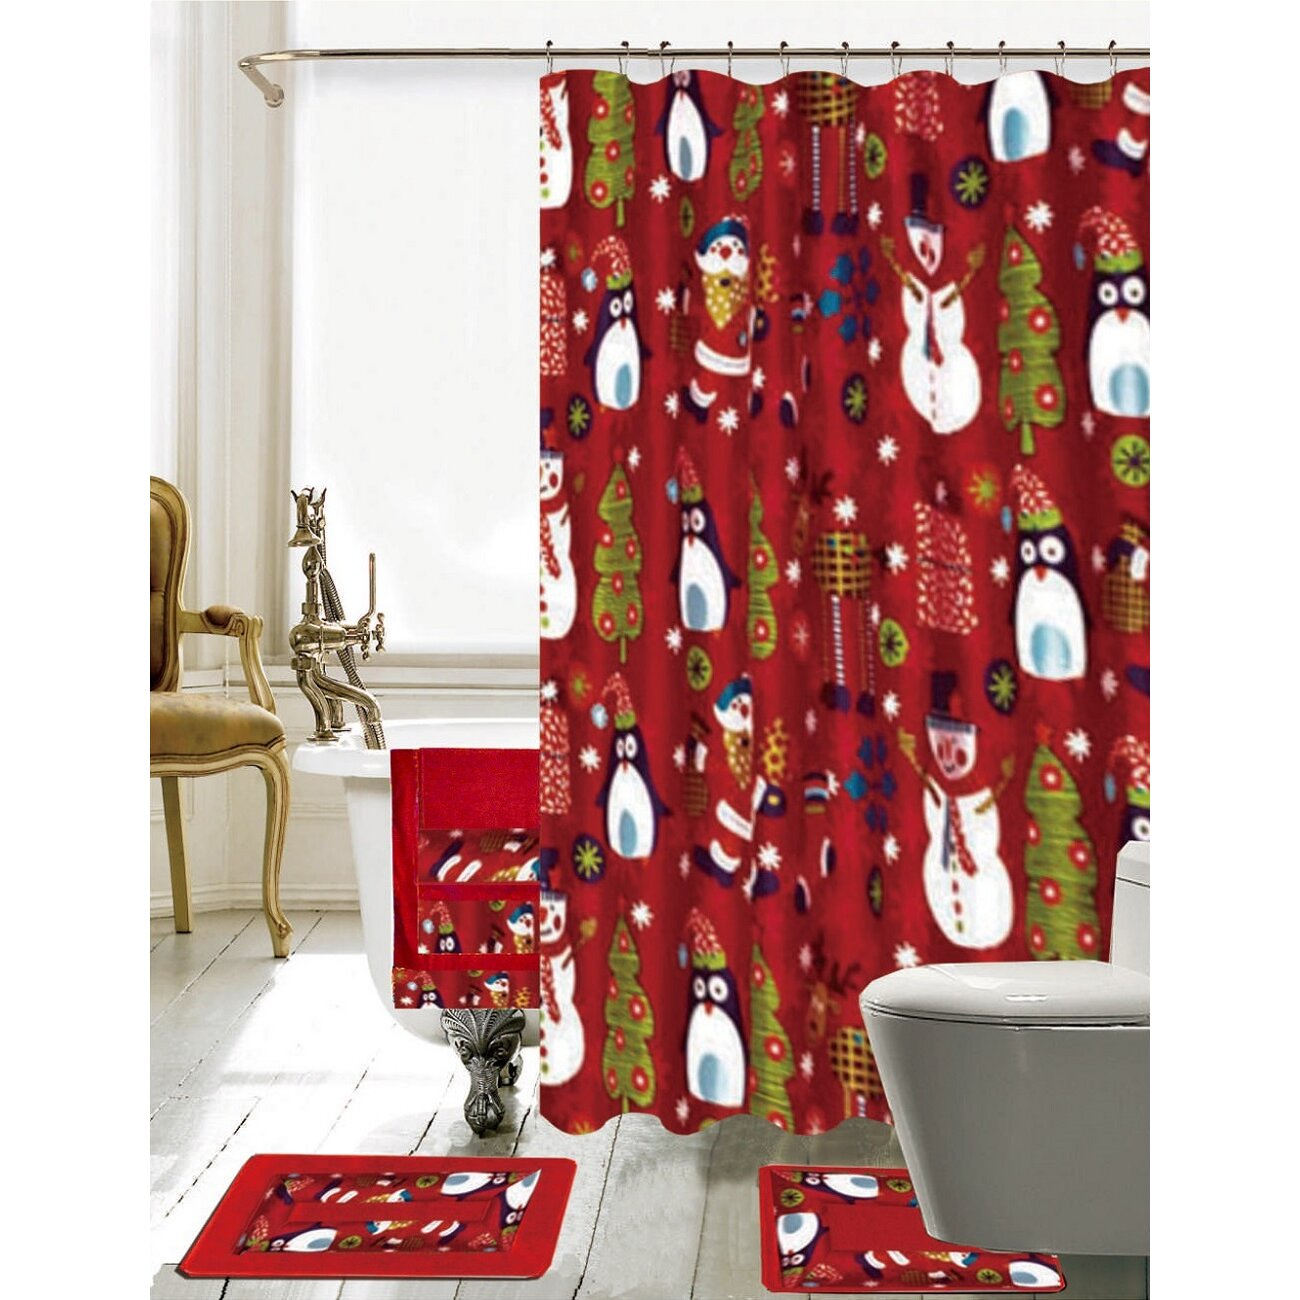 Christmas bathroom decor - Daniels Bath Christmas Bathroom Decor 18 Piece Shower Curtain Set